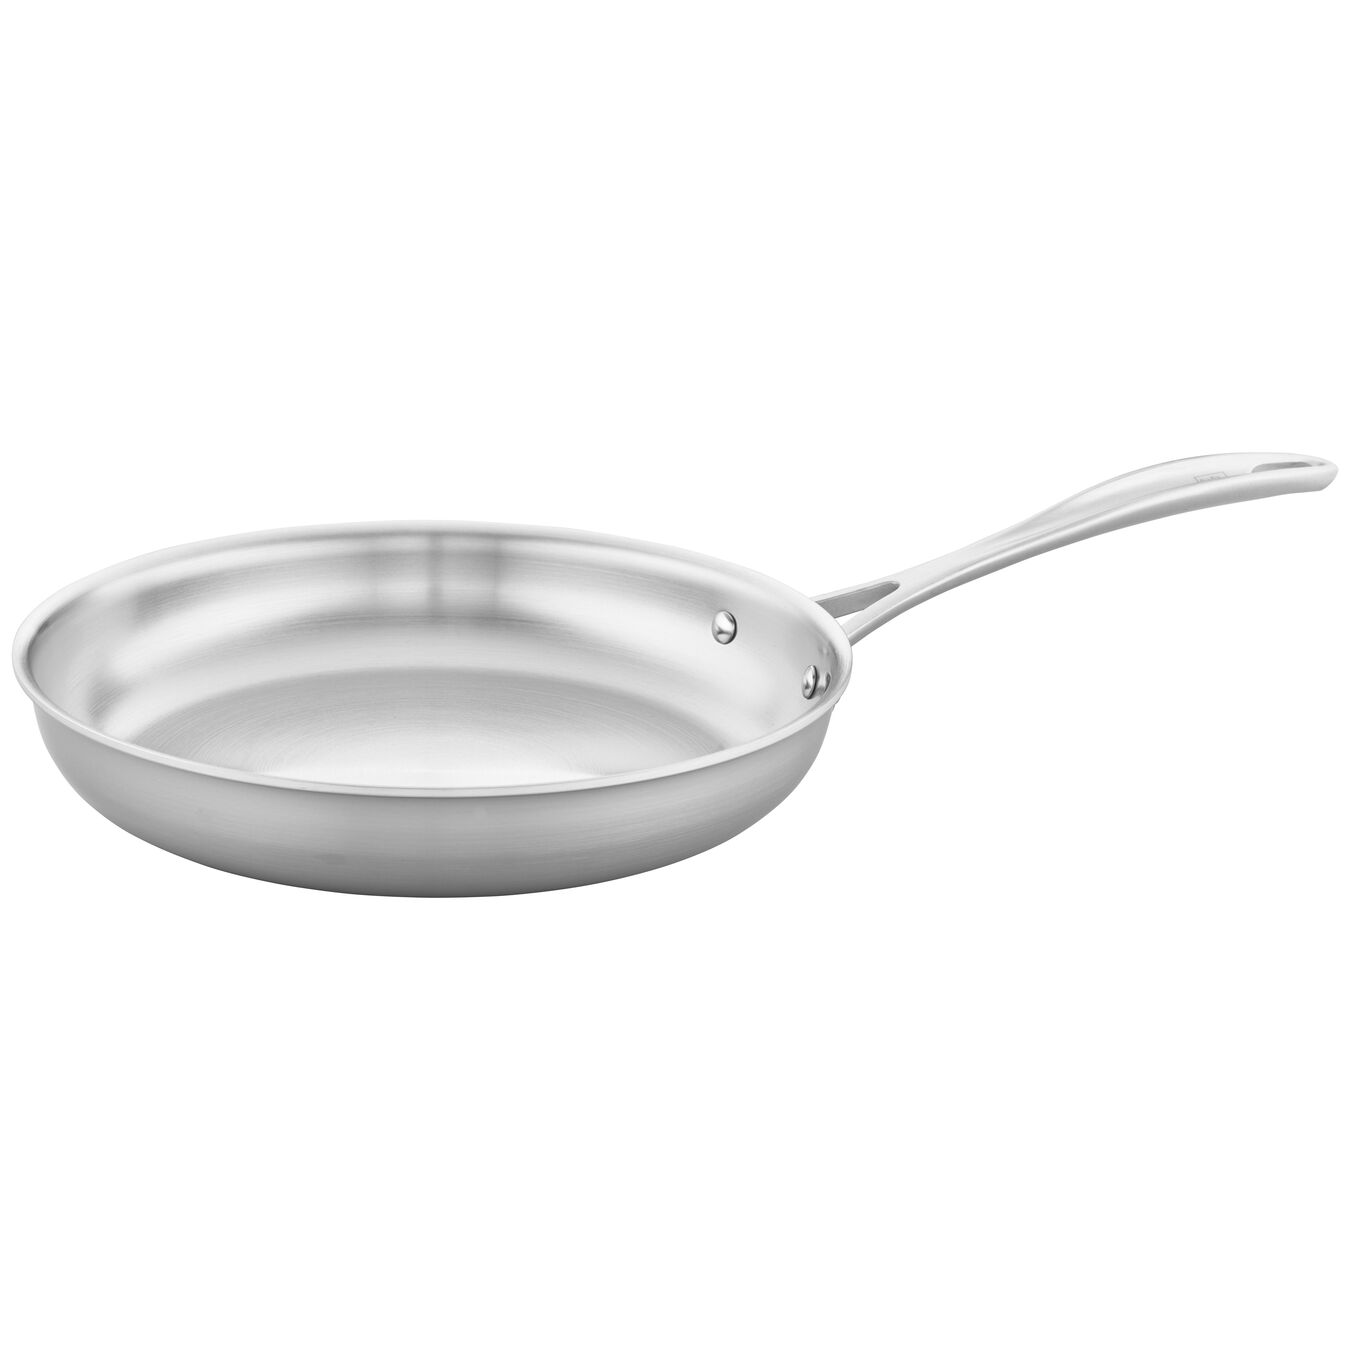 3 Ply, 10-inch, 18/10 Stainless Steel, Frying pan,,large 1